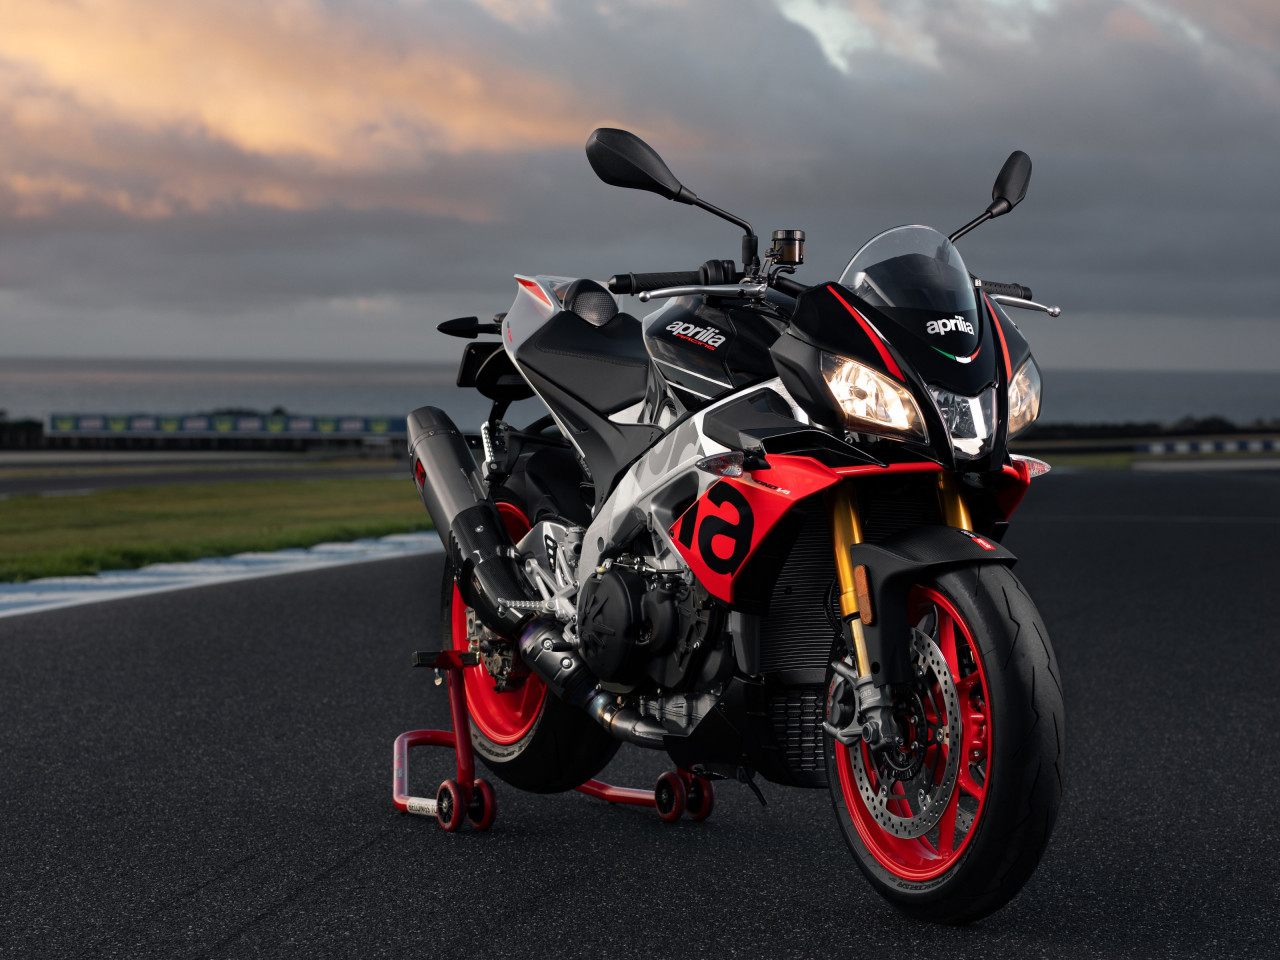 Aprilia Tuono V4 1100 Factory wallpaper 1280x960